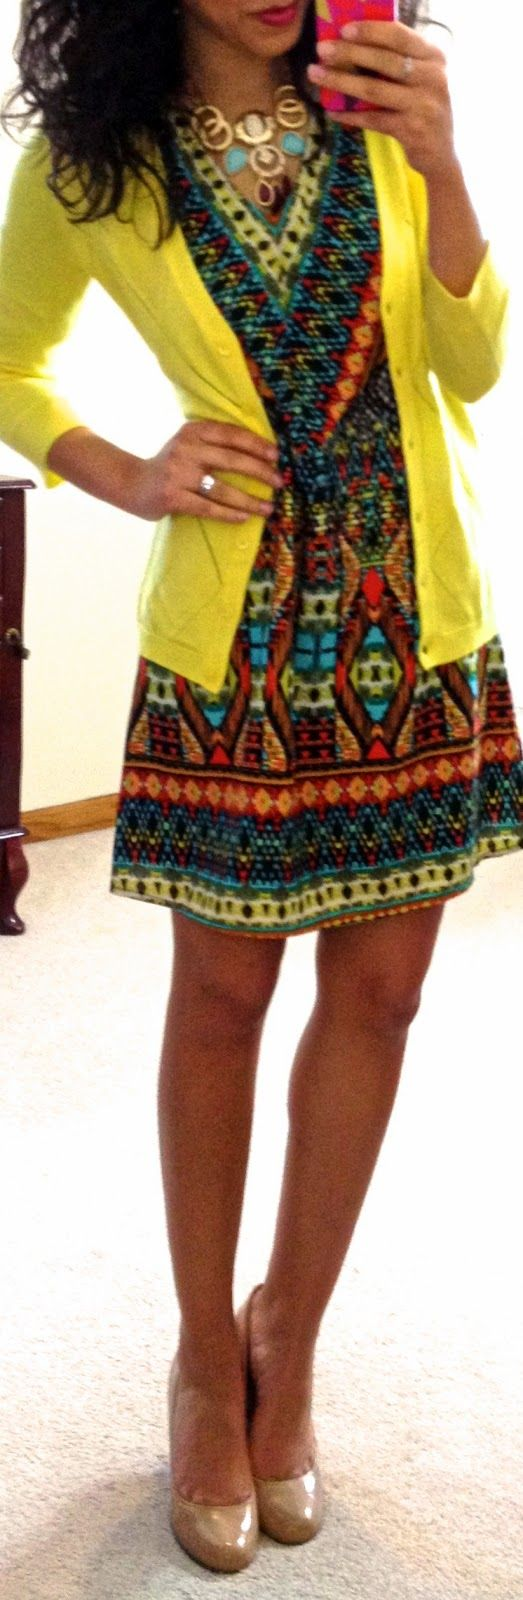 Absolutely ADORE this!!! LOVE tribal print and yellow (my favorite color) makes it pop!